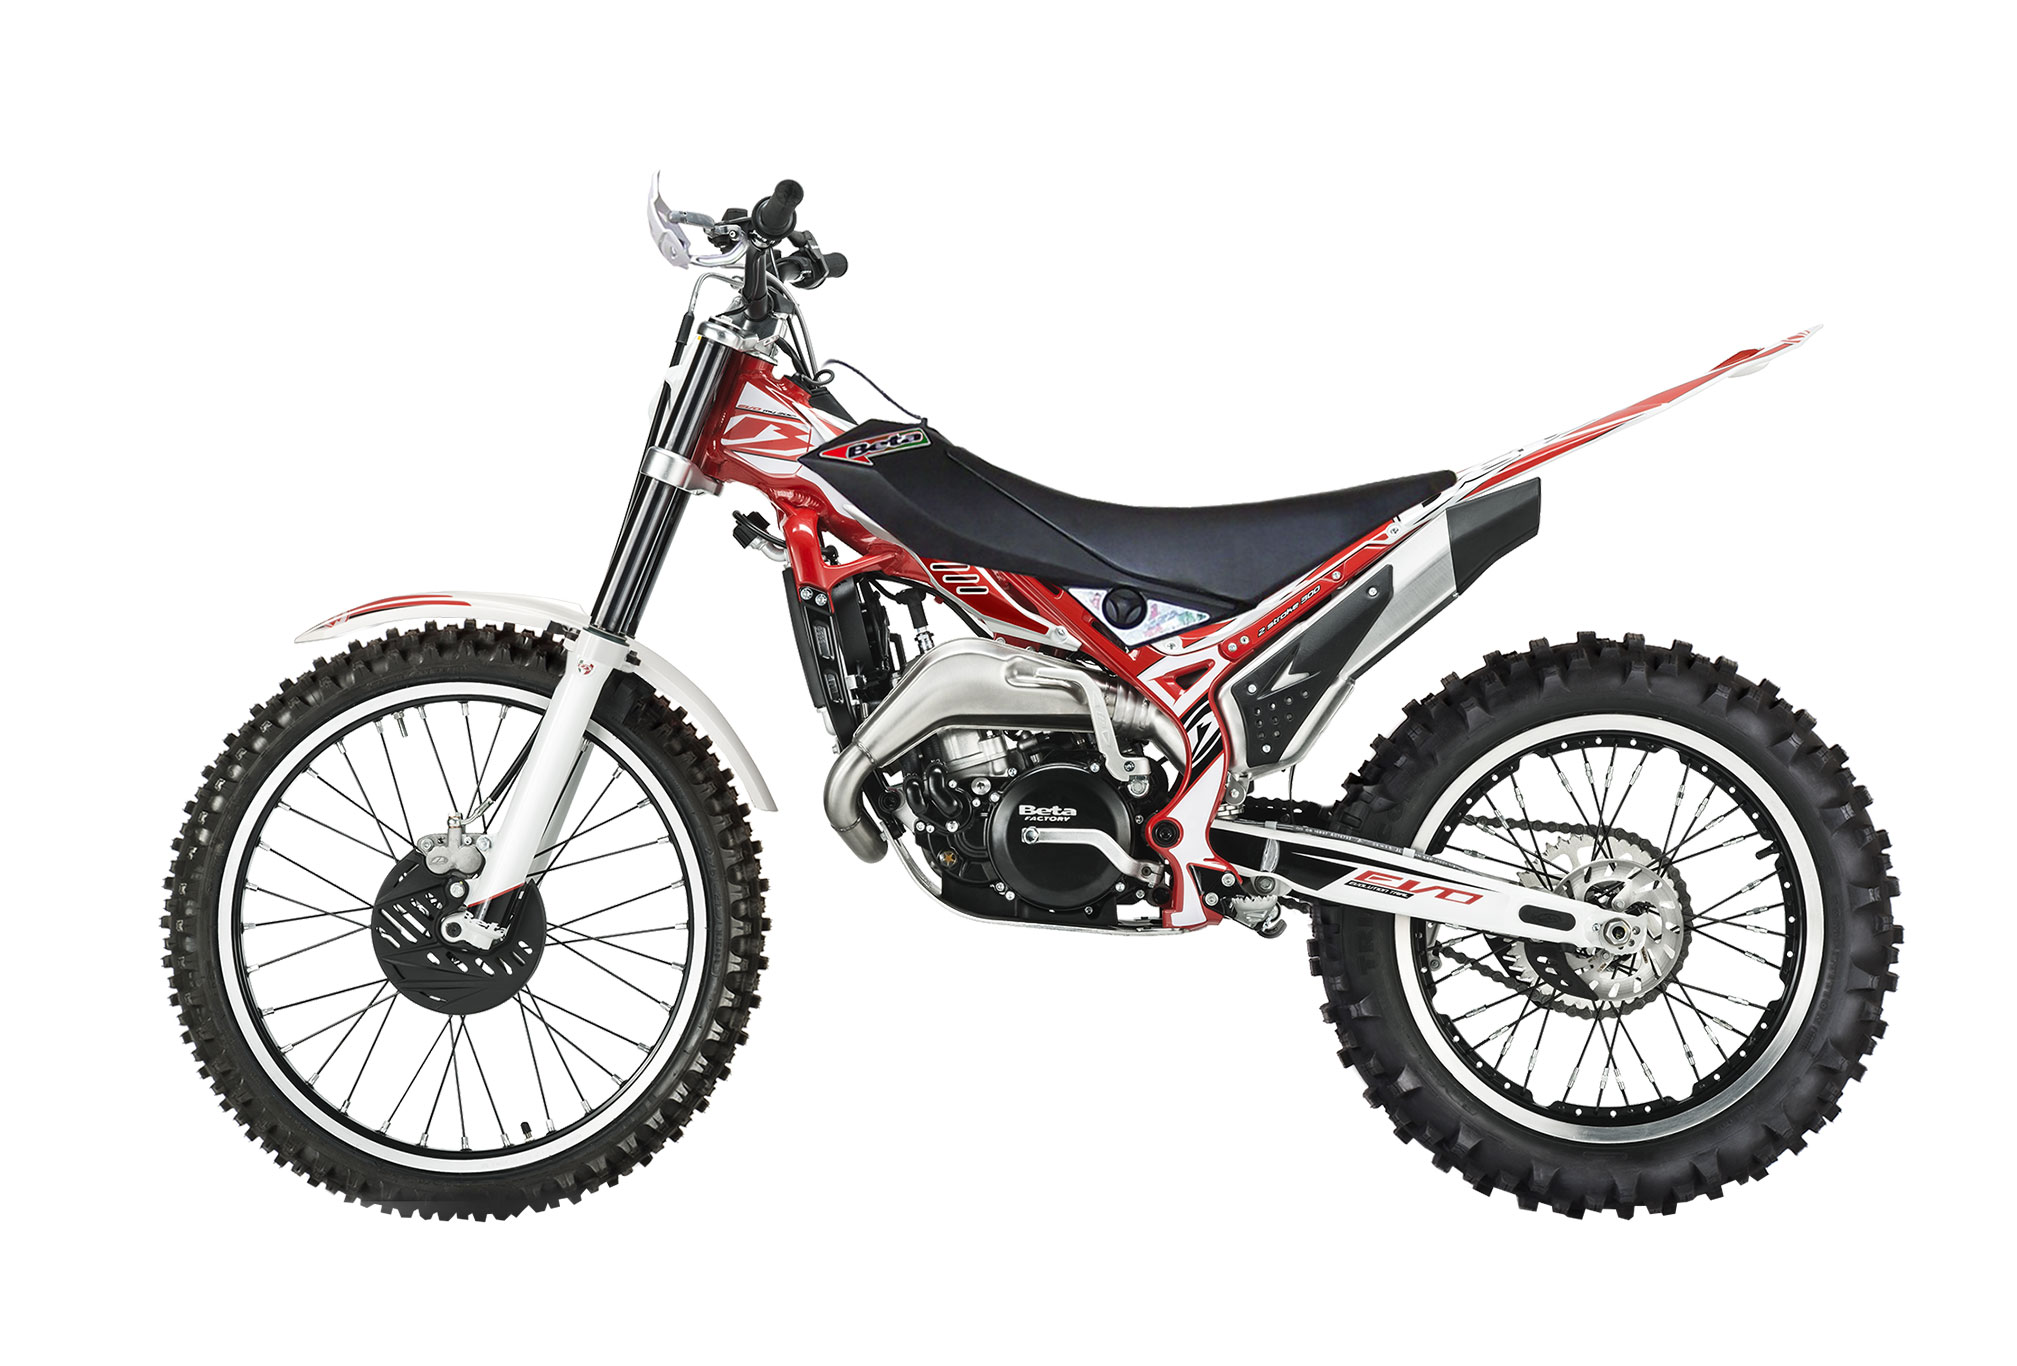 Beta Evo 250 2 Stroke Sport Review